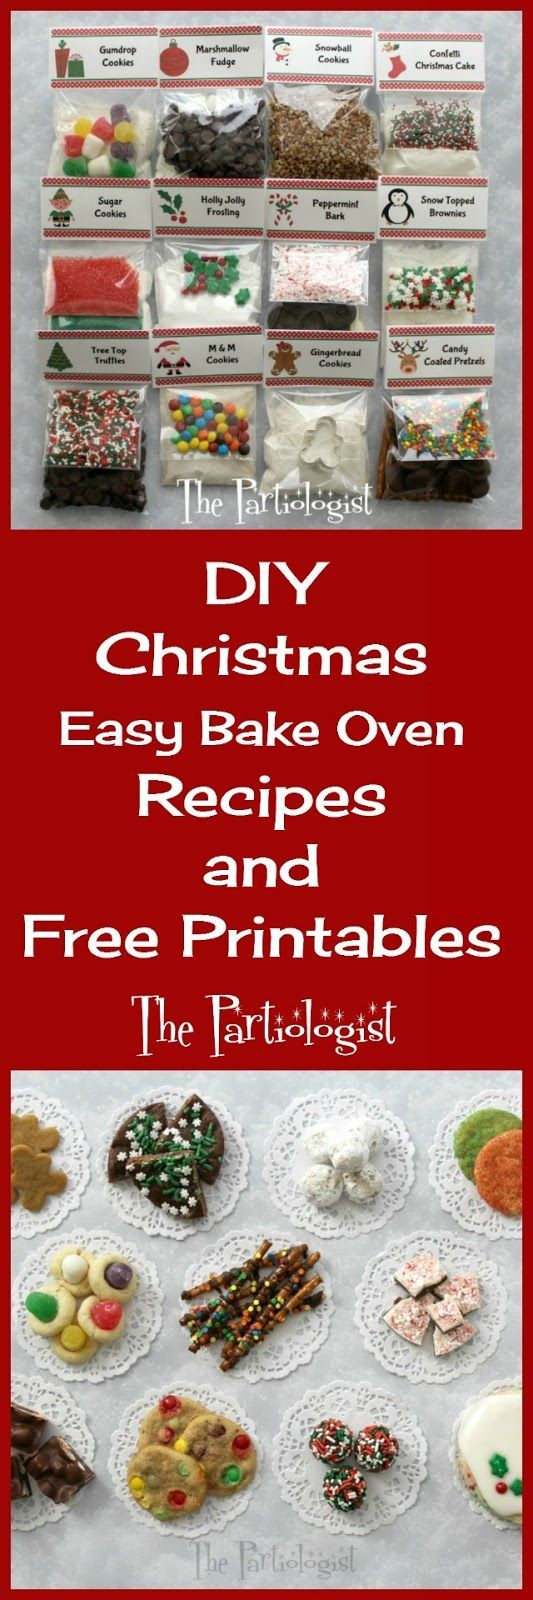 The perfect gift does exist! Well, the perfect gift for the little baker in your life. I still get excited when Ibuyan Easy Bake Oven a...